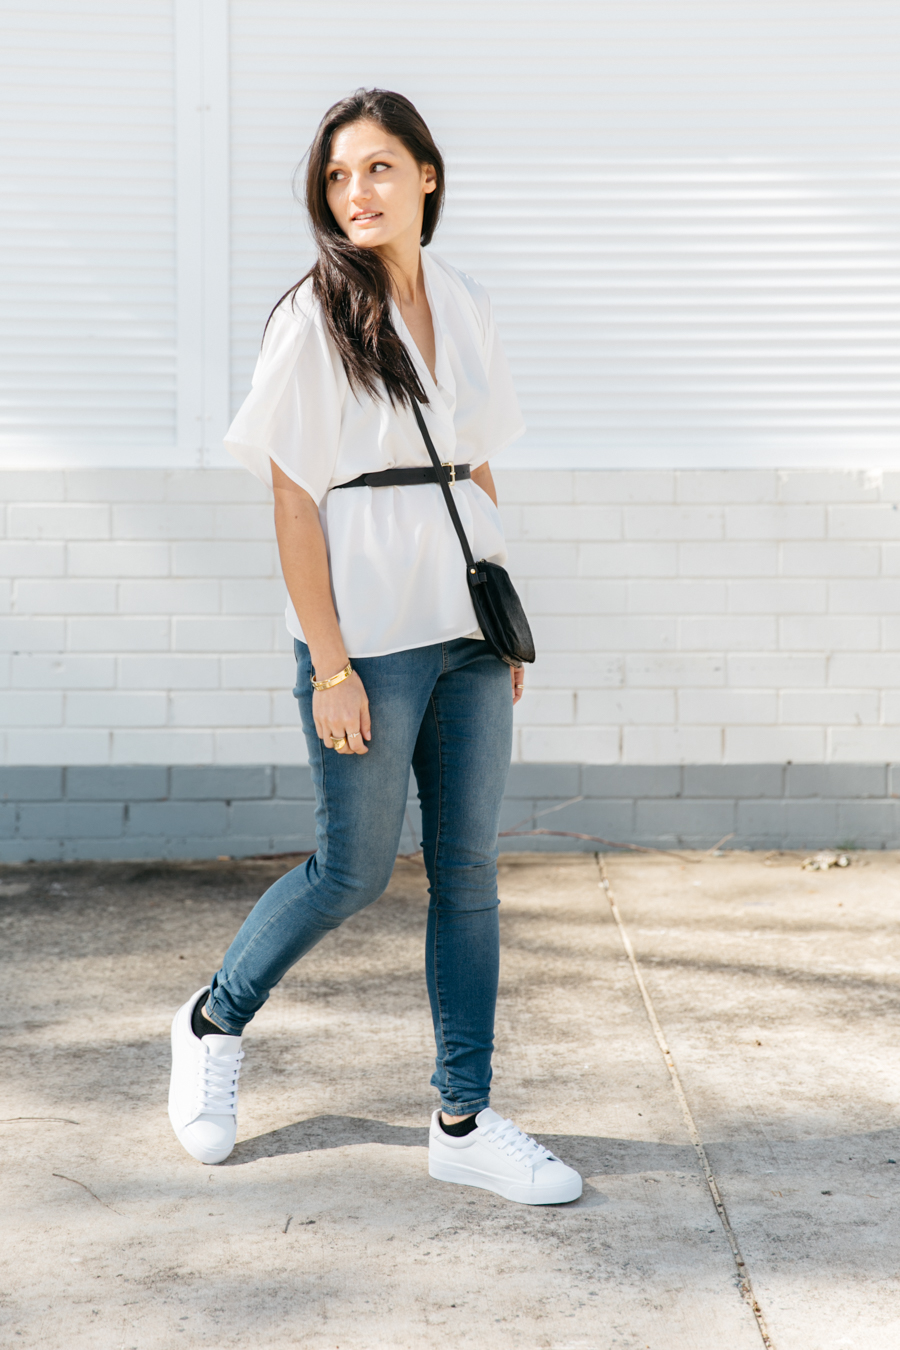 ASOS blogger collaboration: Match Yo Mama, minimalist street style.